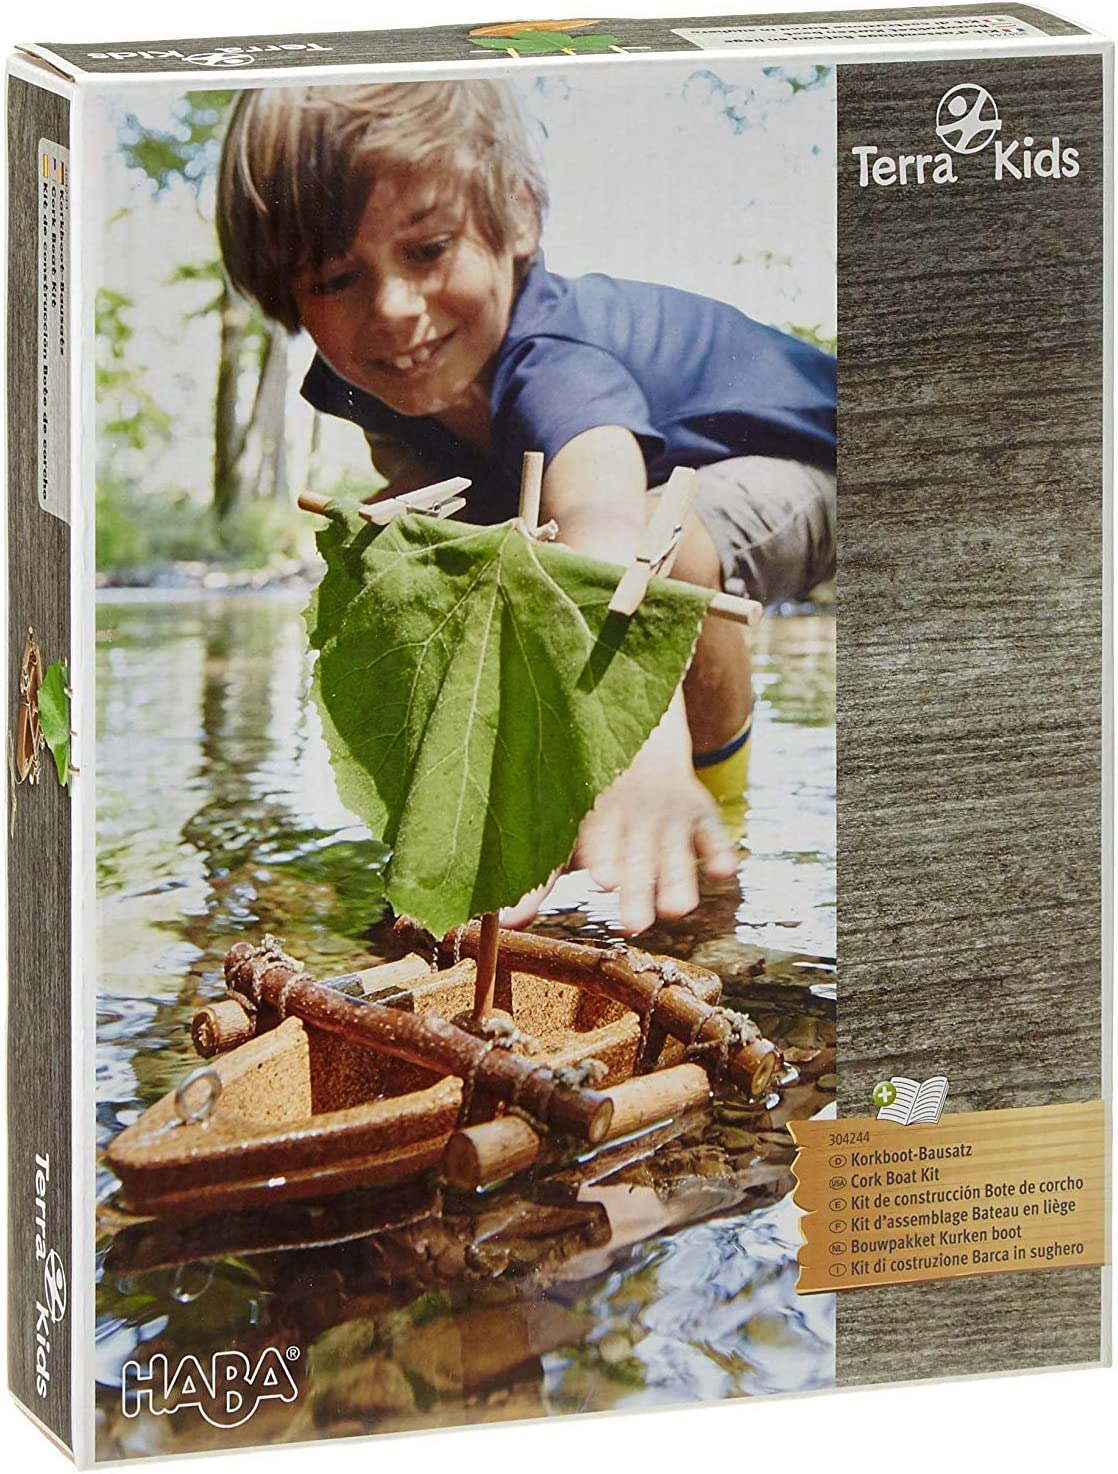 HABA Terra Kids Cork Boat Easy to Assemble and Upgrade with Materials Found in Nature DIY Fun for Young and Old